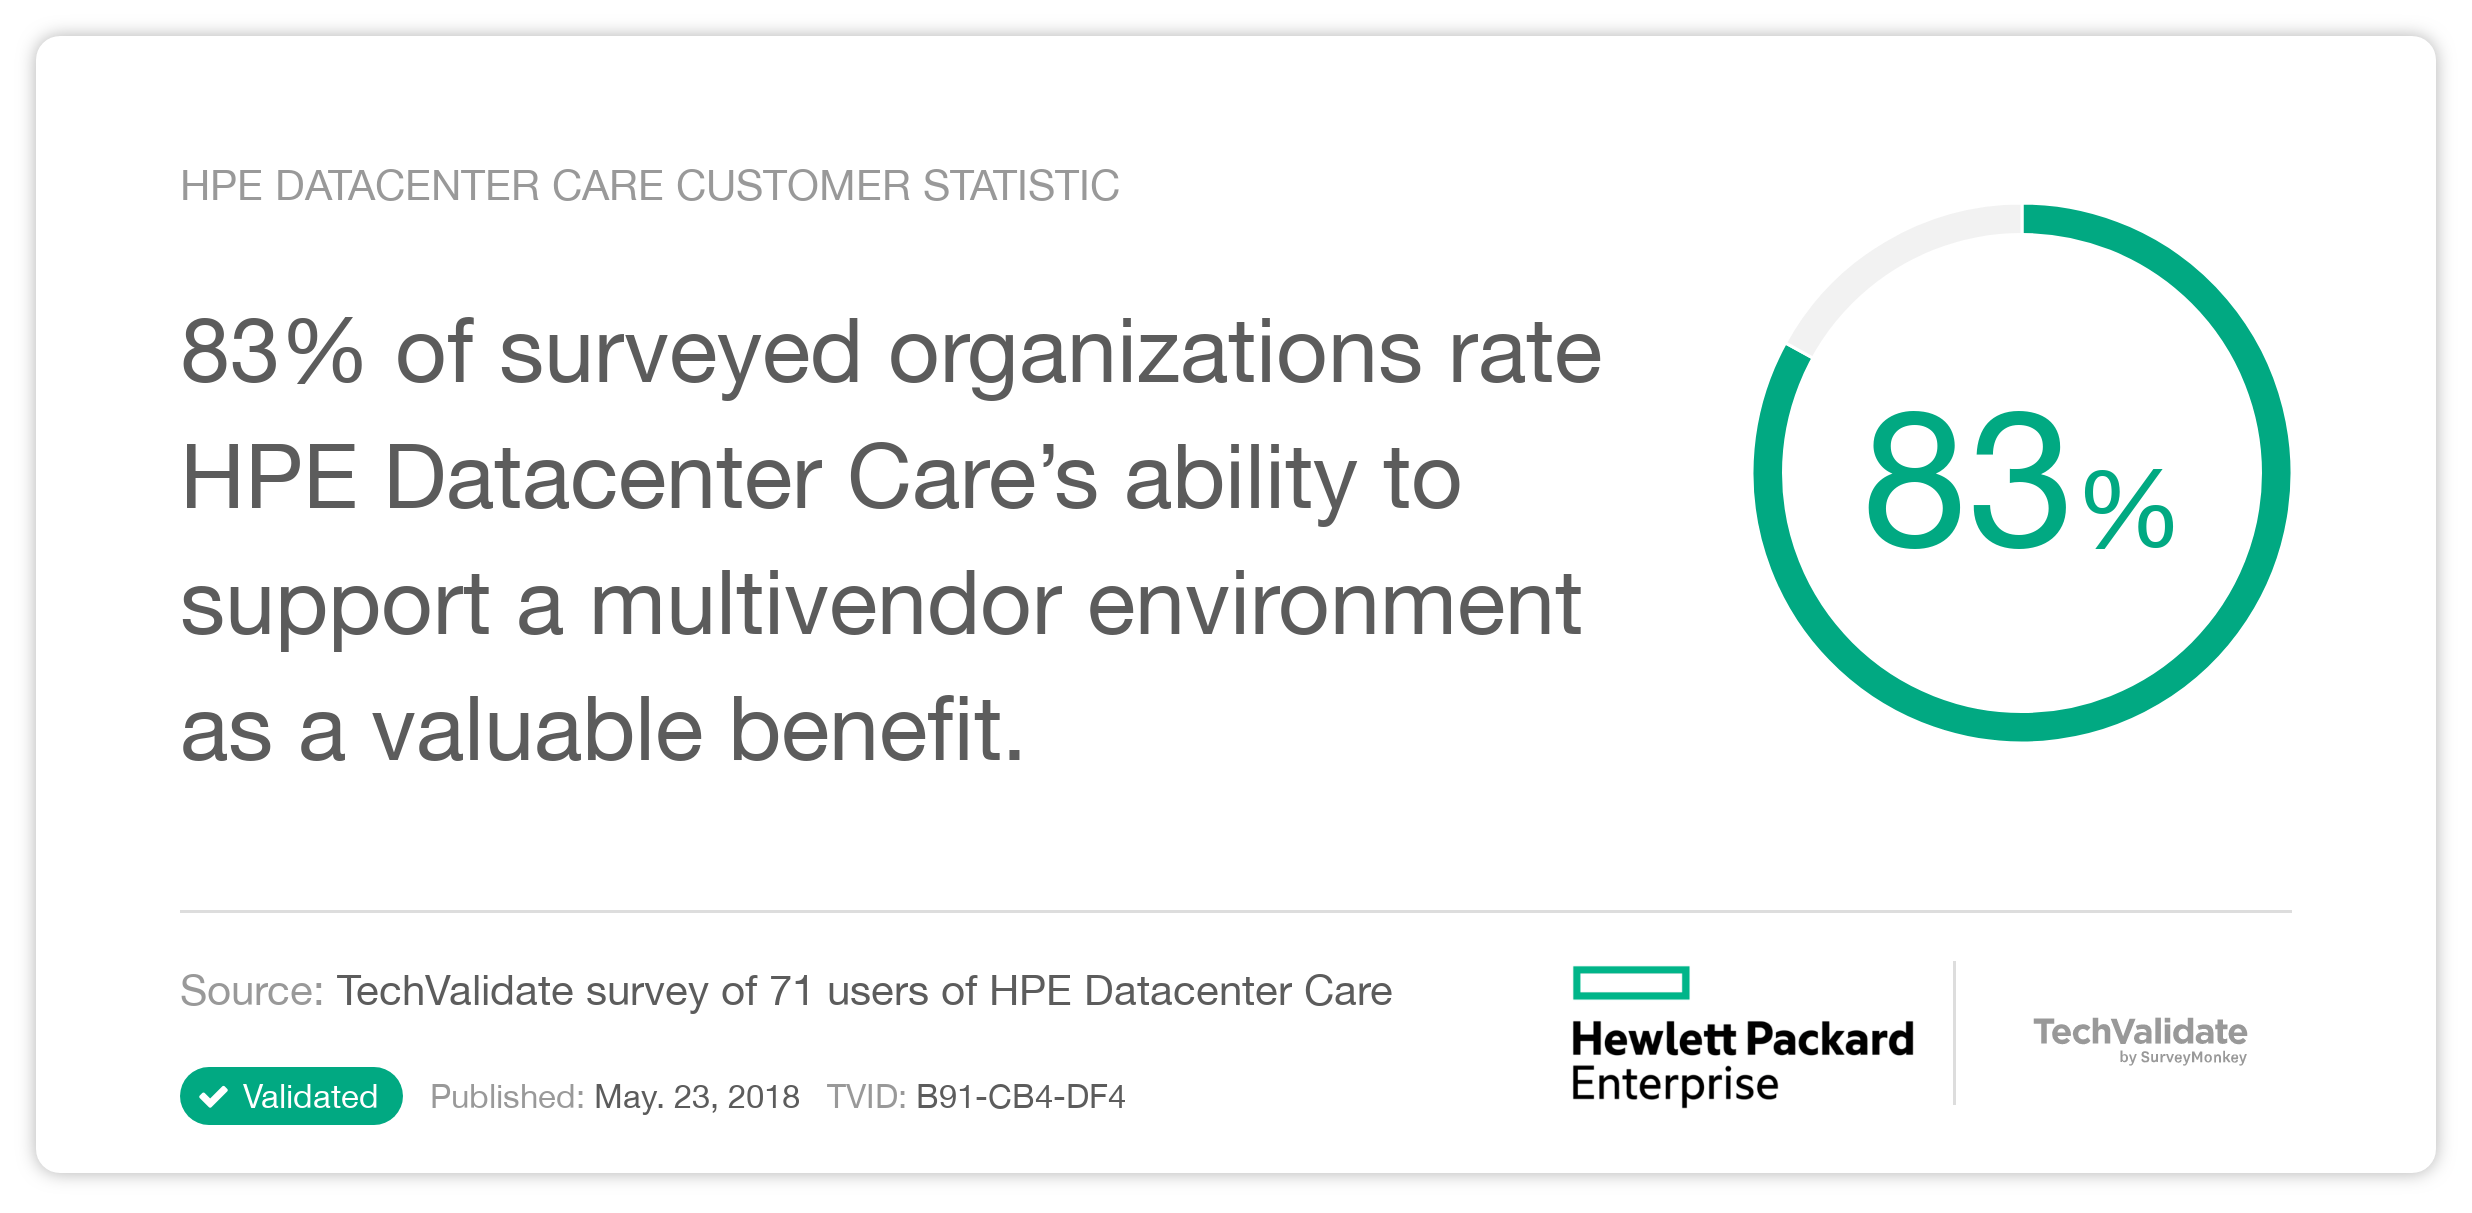 HPE Datacenter Care Customer Statistic